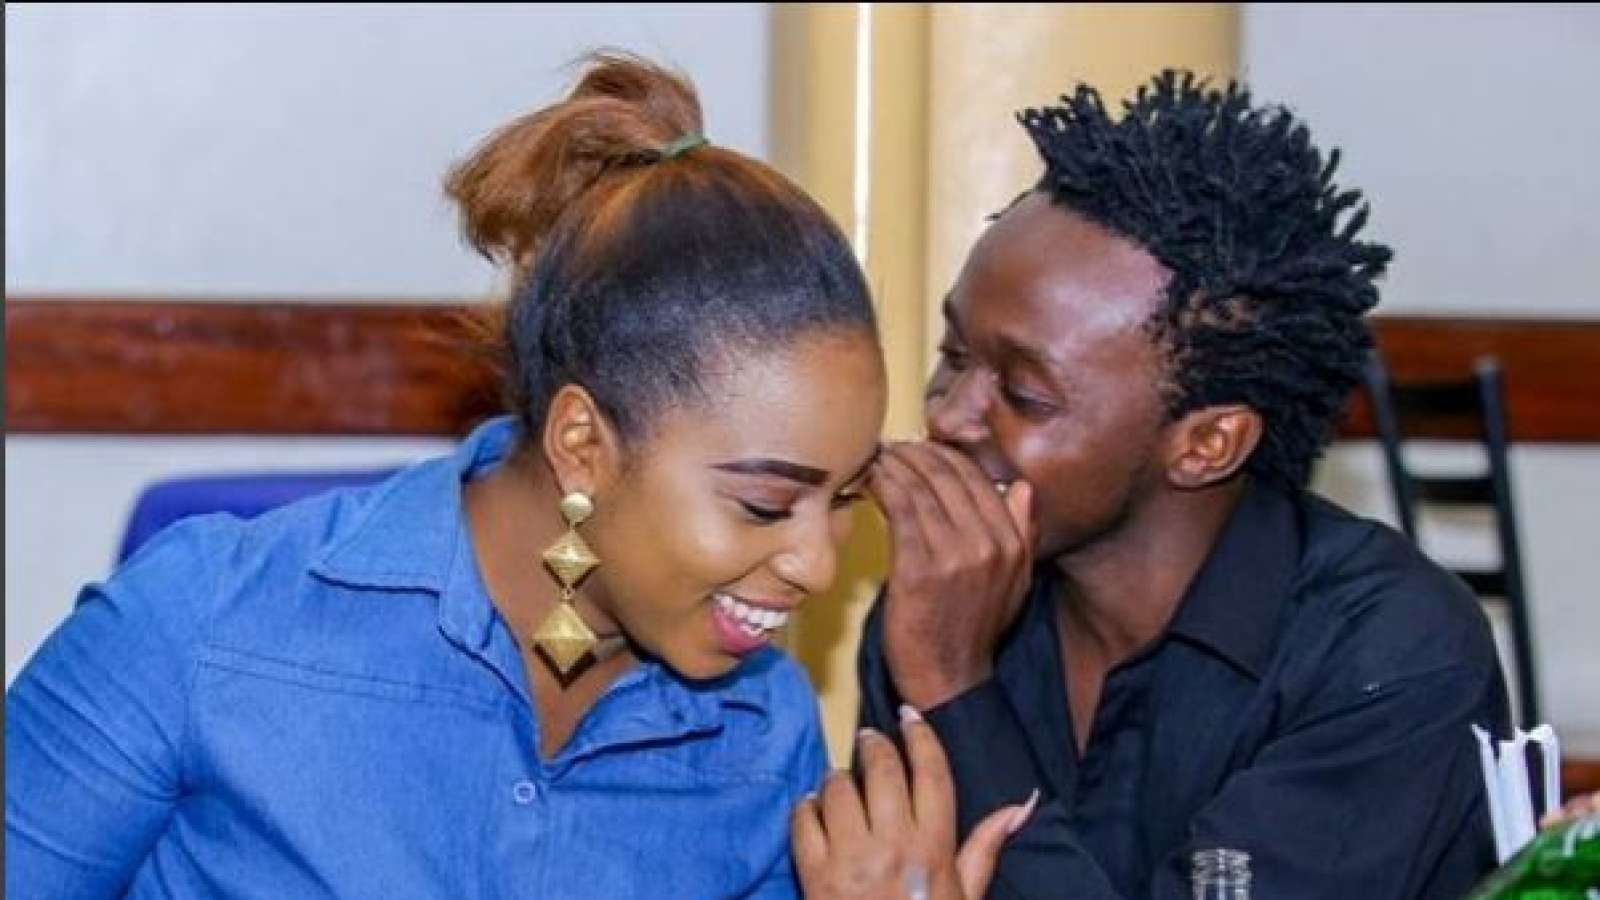 Bahati: Diana and I will have our wedding in August - The